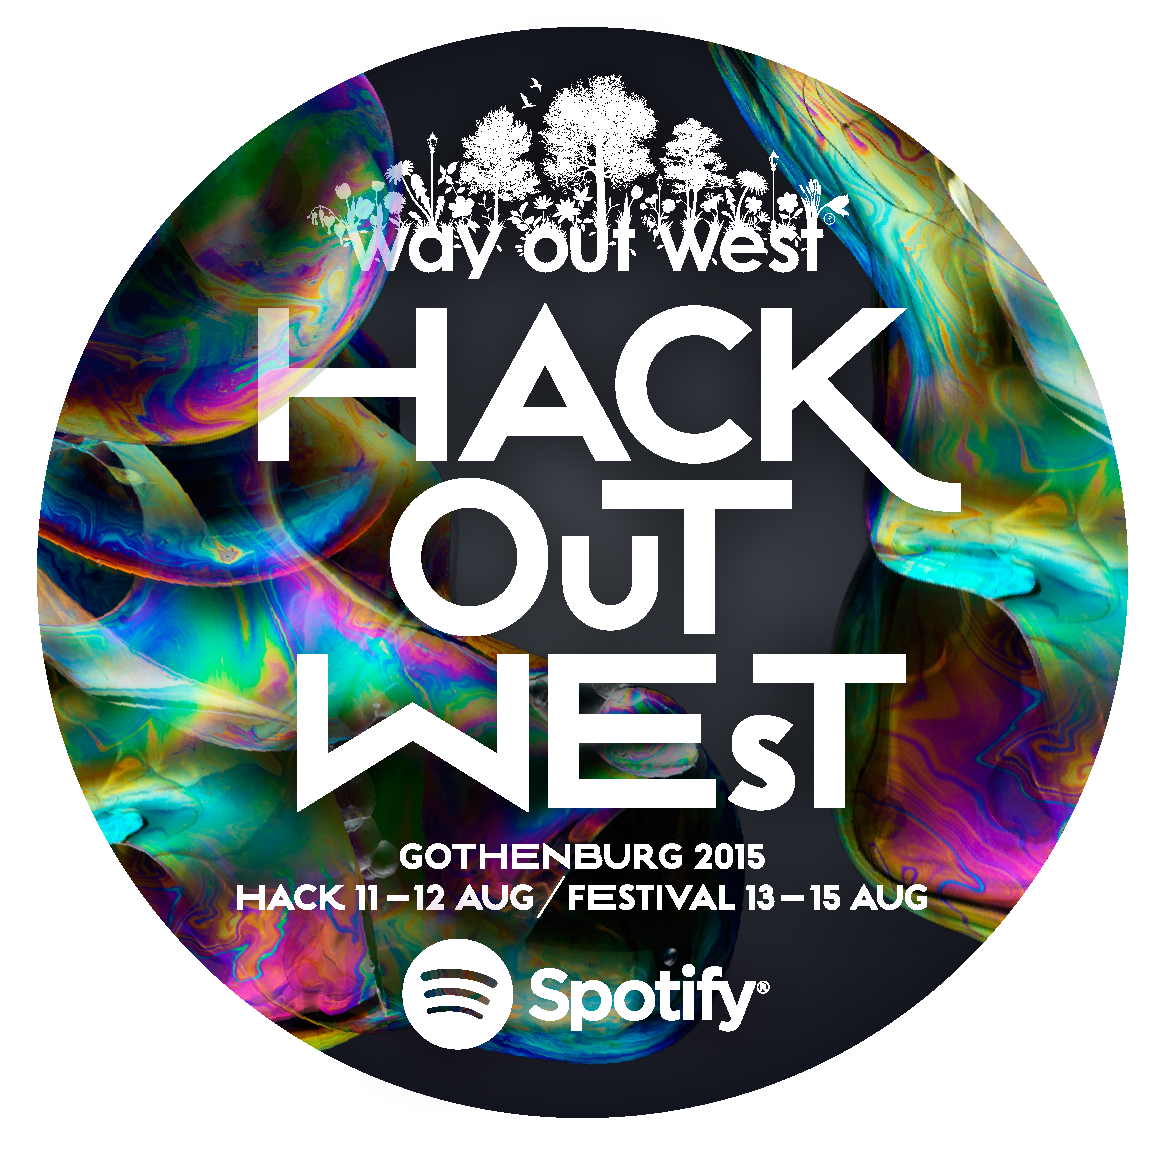 c.H.a4.10c.Hack-Out-West-2015_final.png?